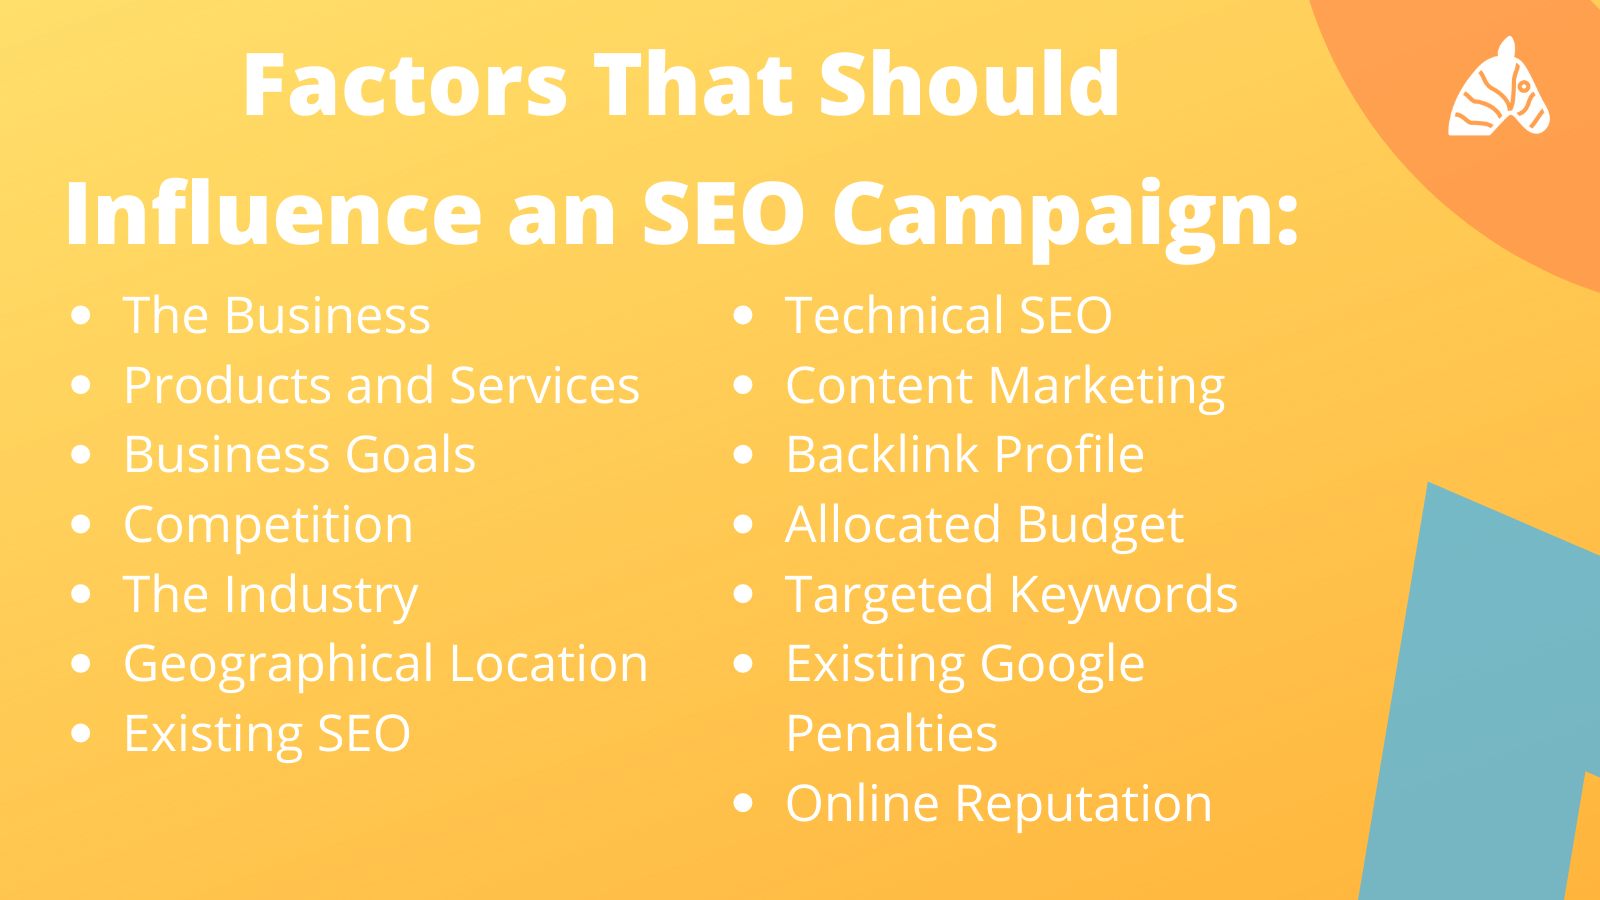 information on what should influence an SEO campaign